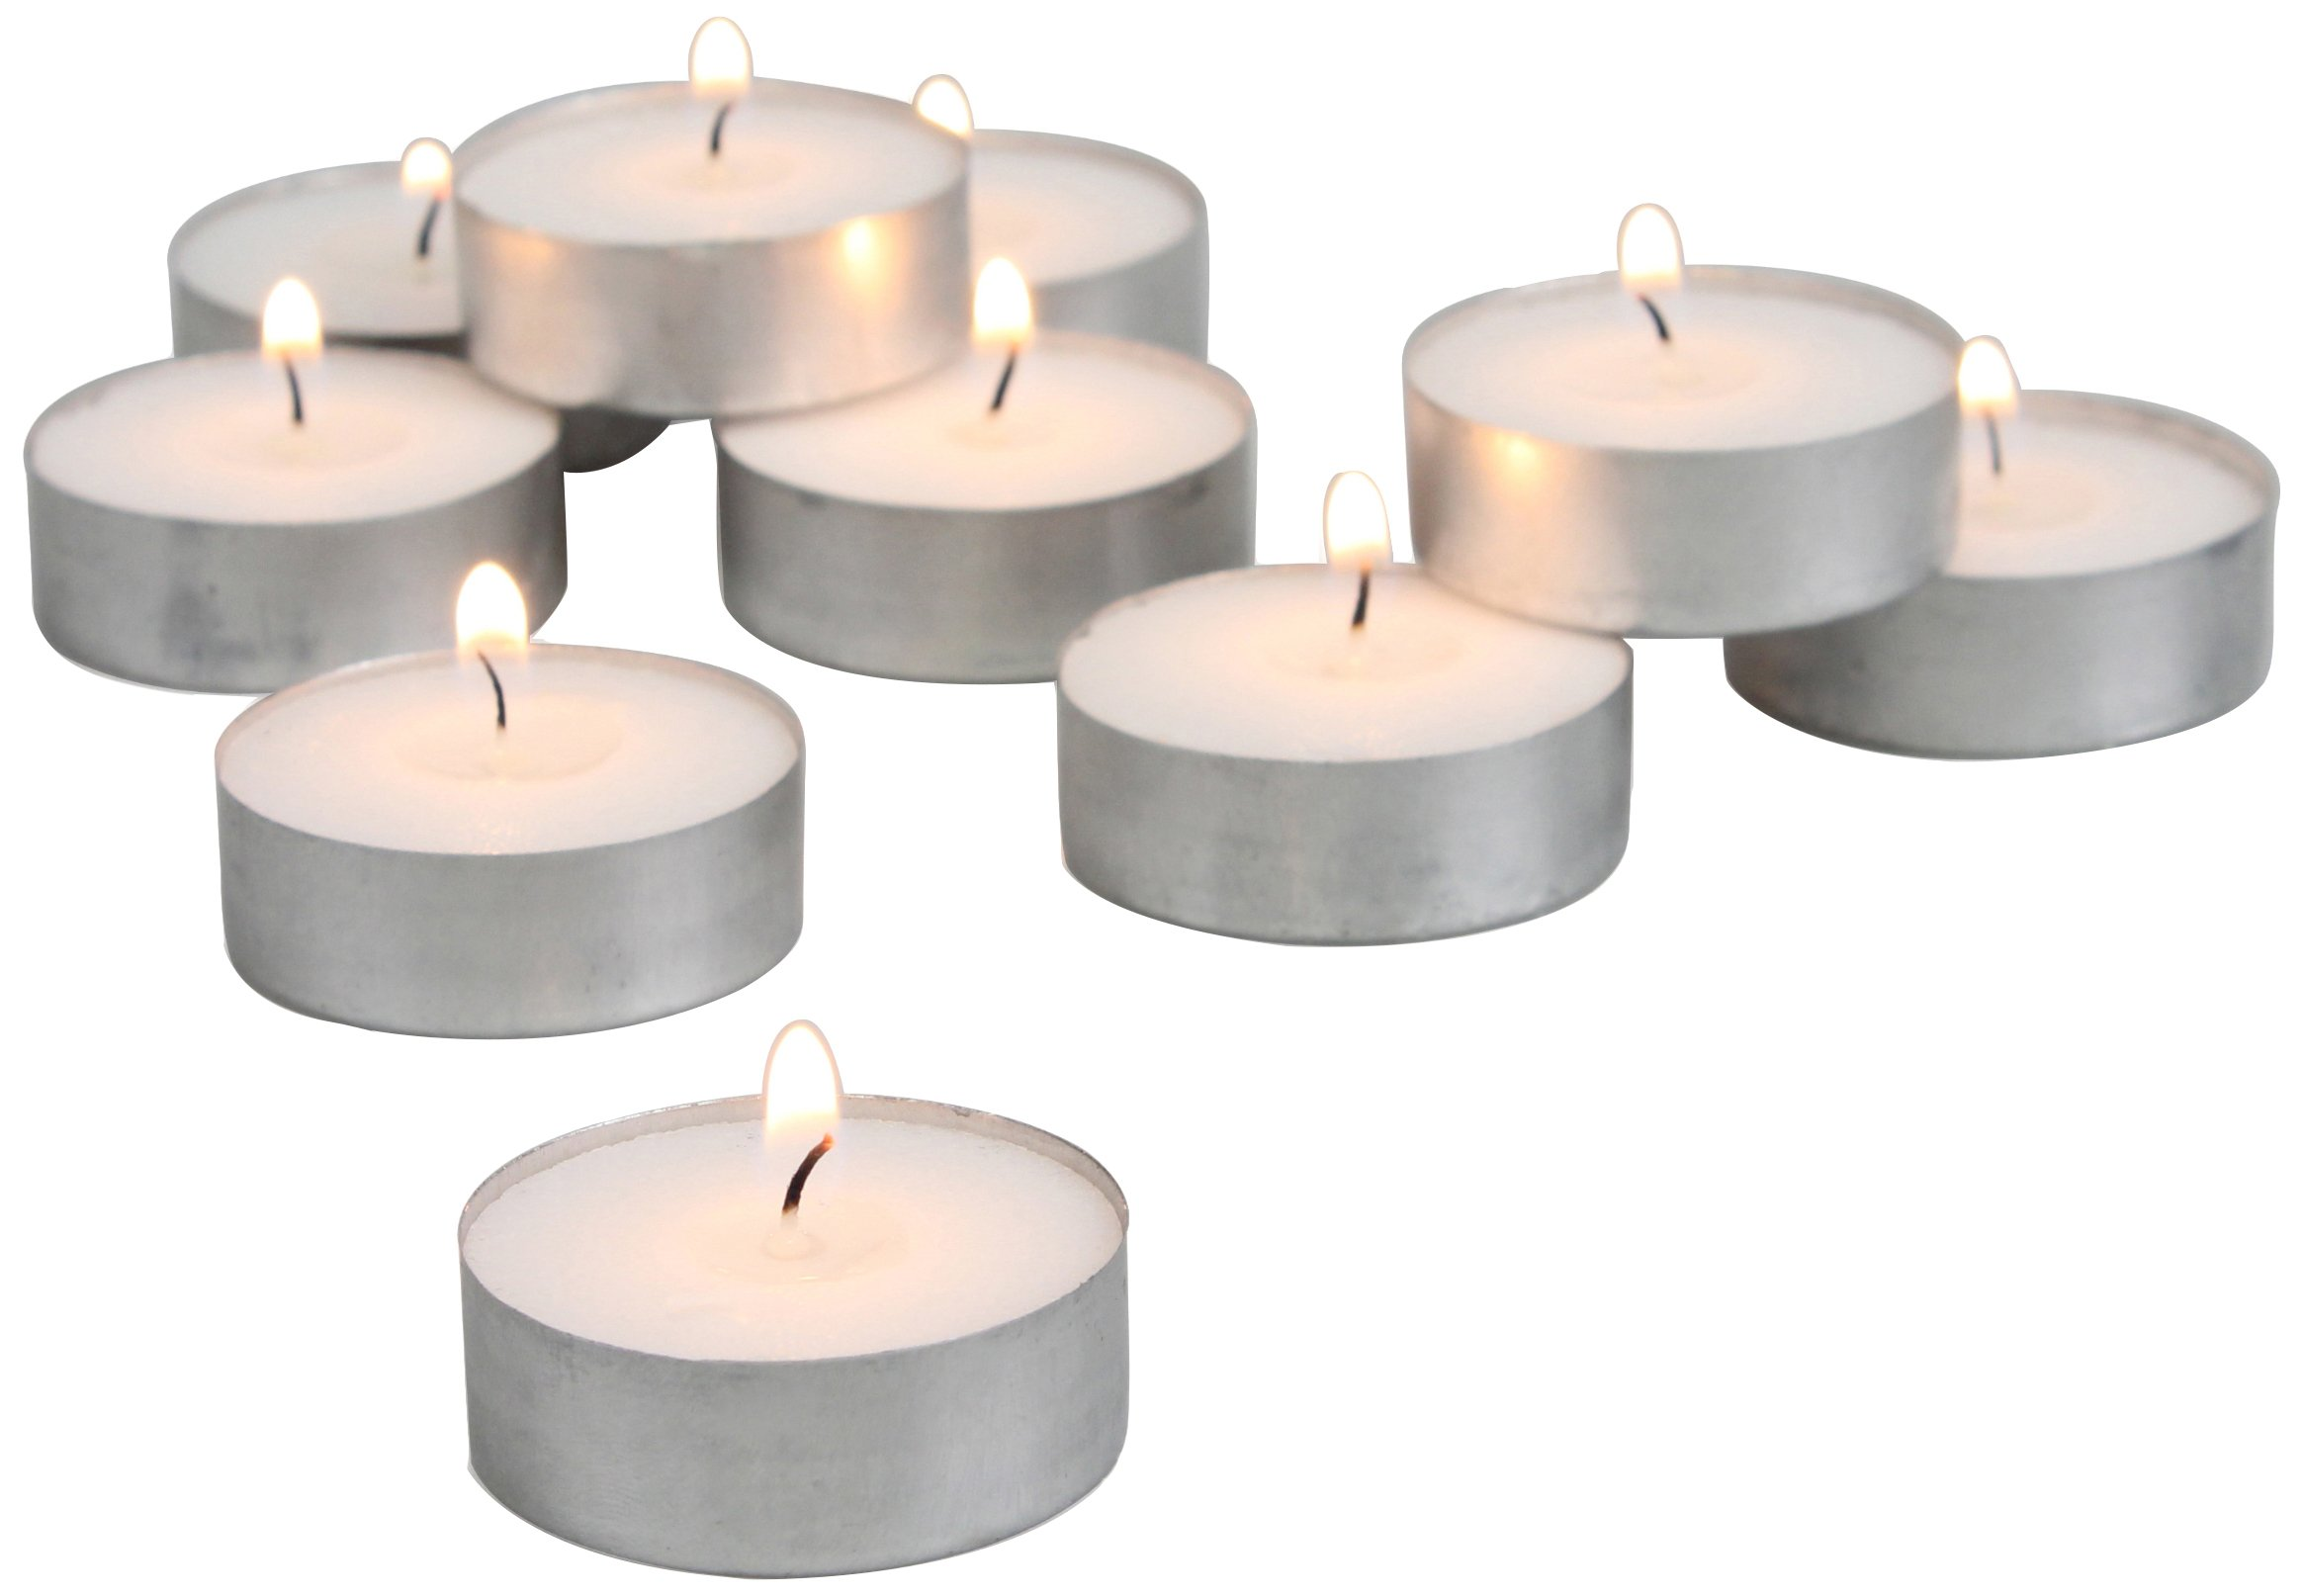 Stonebriar 4 Hour White Unscented Long Burning Tea Light Candles, Candle Accessories Birthdays, Weddings, Spas Everyday Home Decor, 100 Bulk Pack